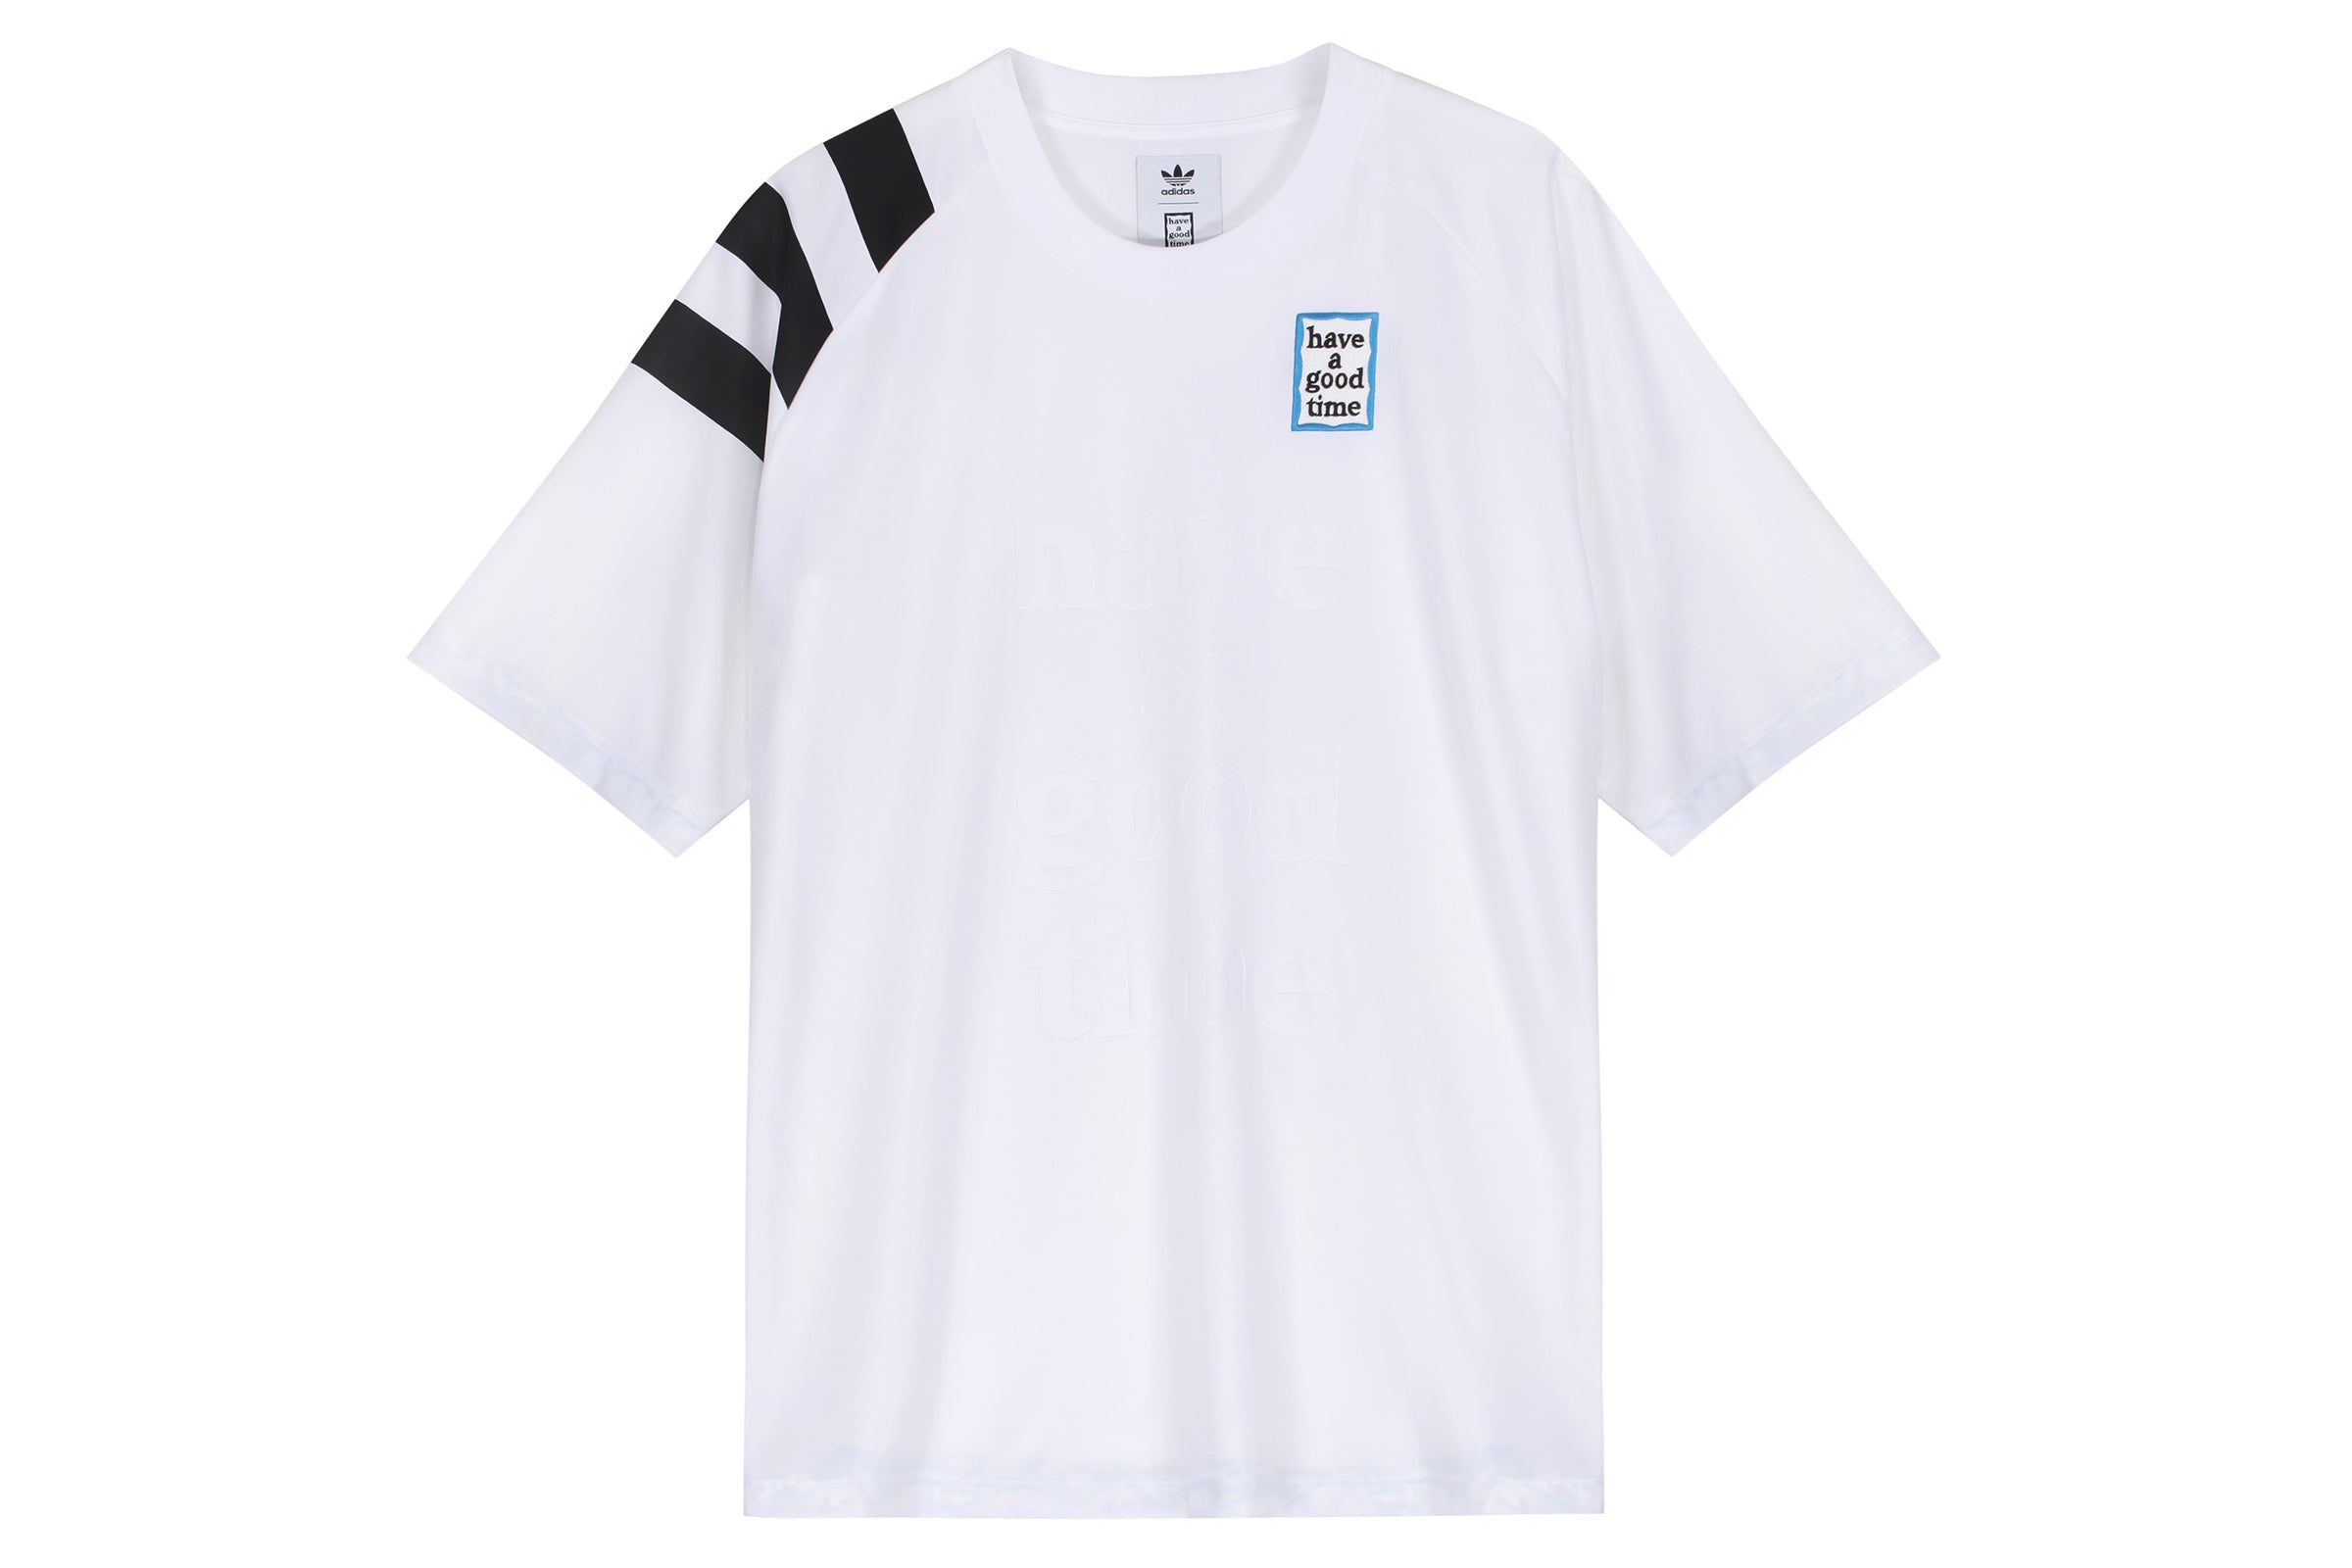 Adidas Game Jersey x Have A Good Time b8f549037